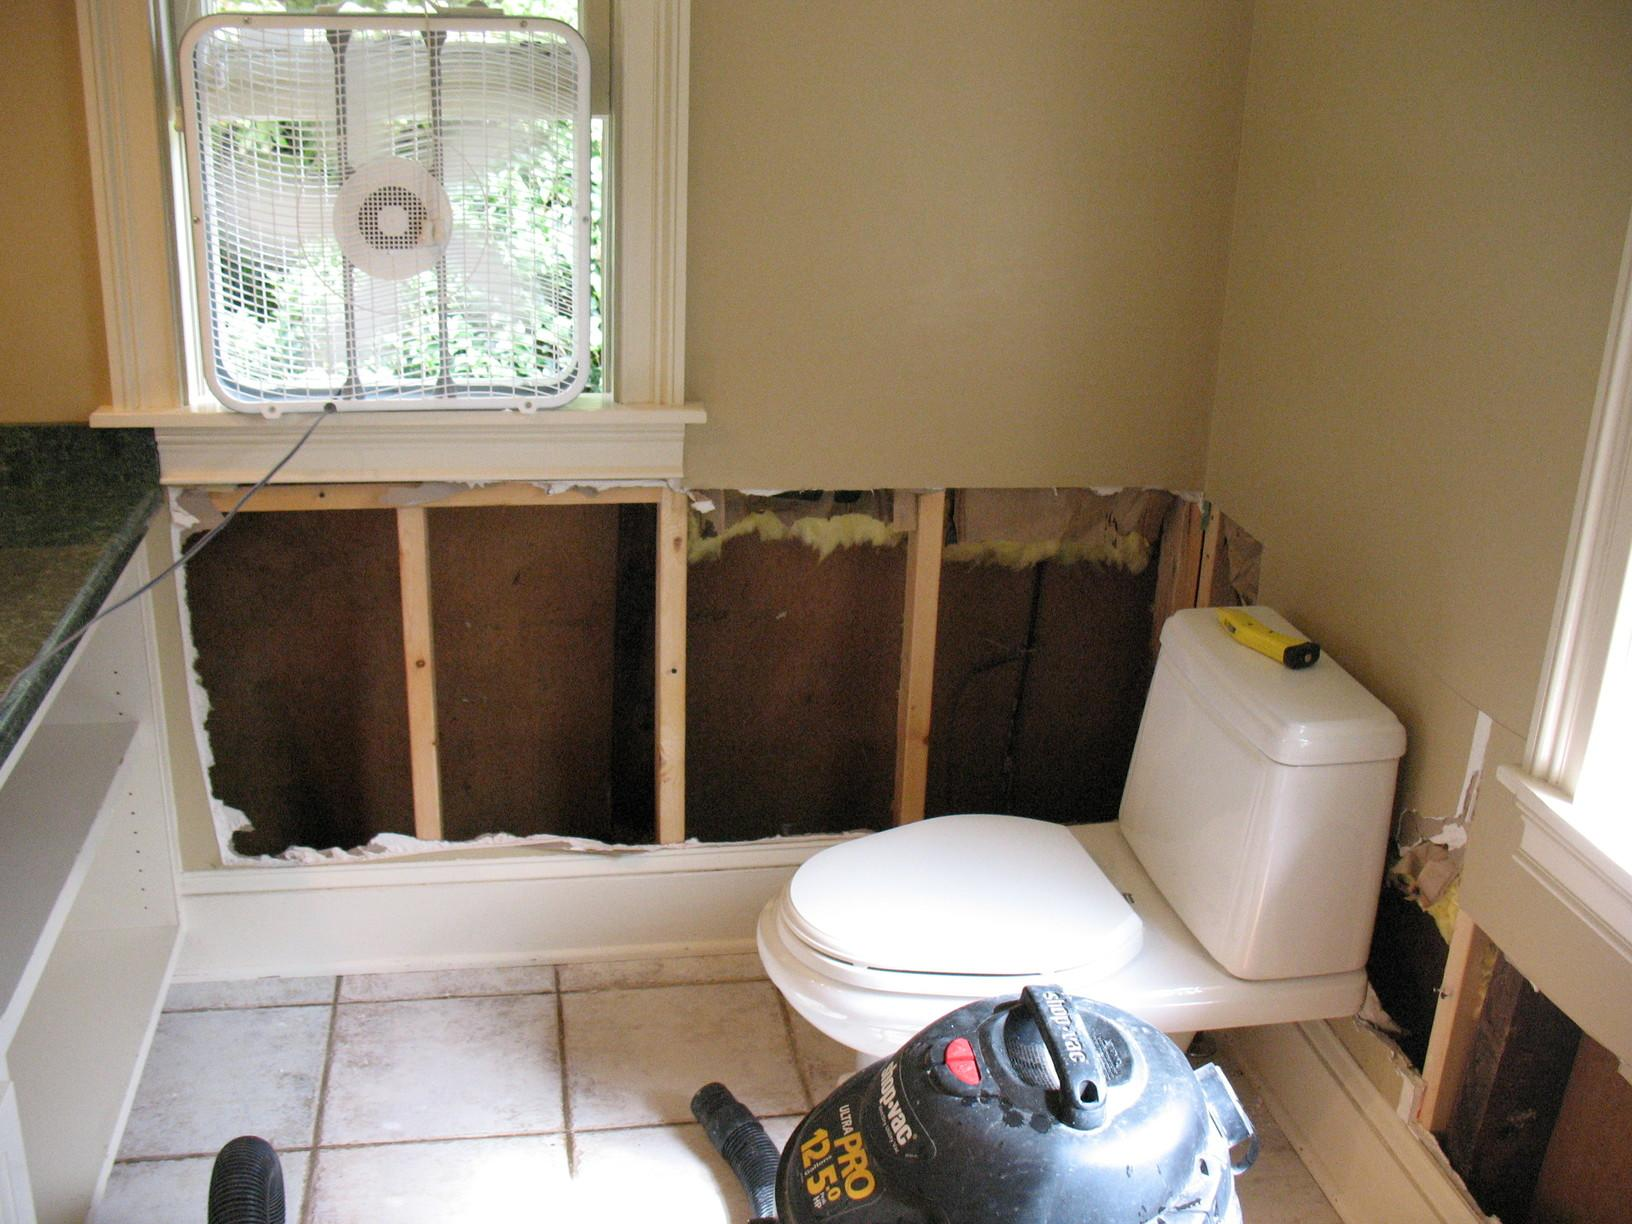 Historic Home bathroom repair - Before Photo